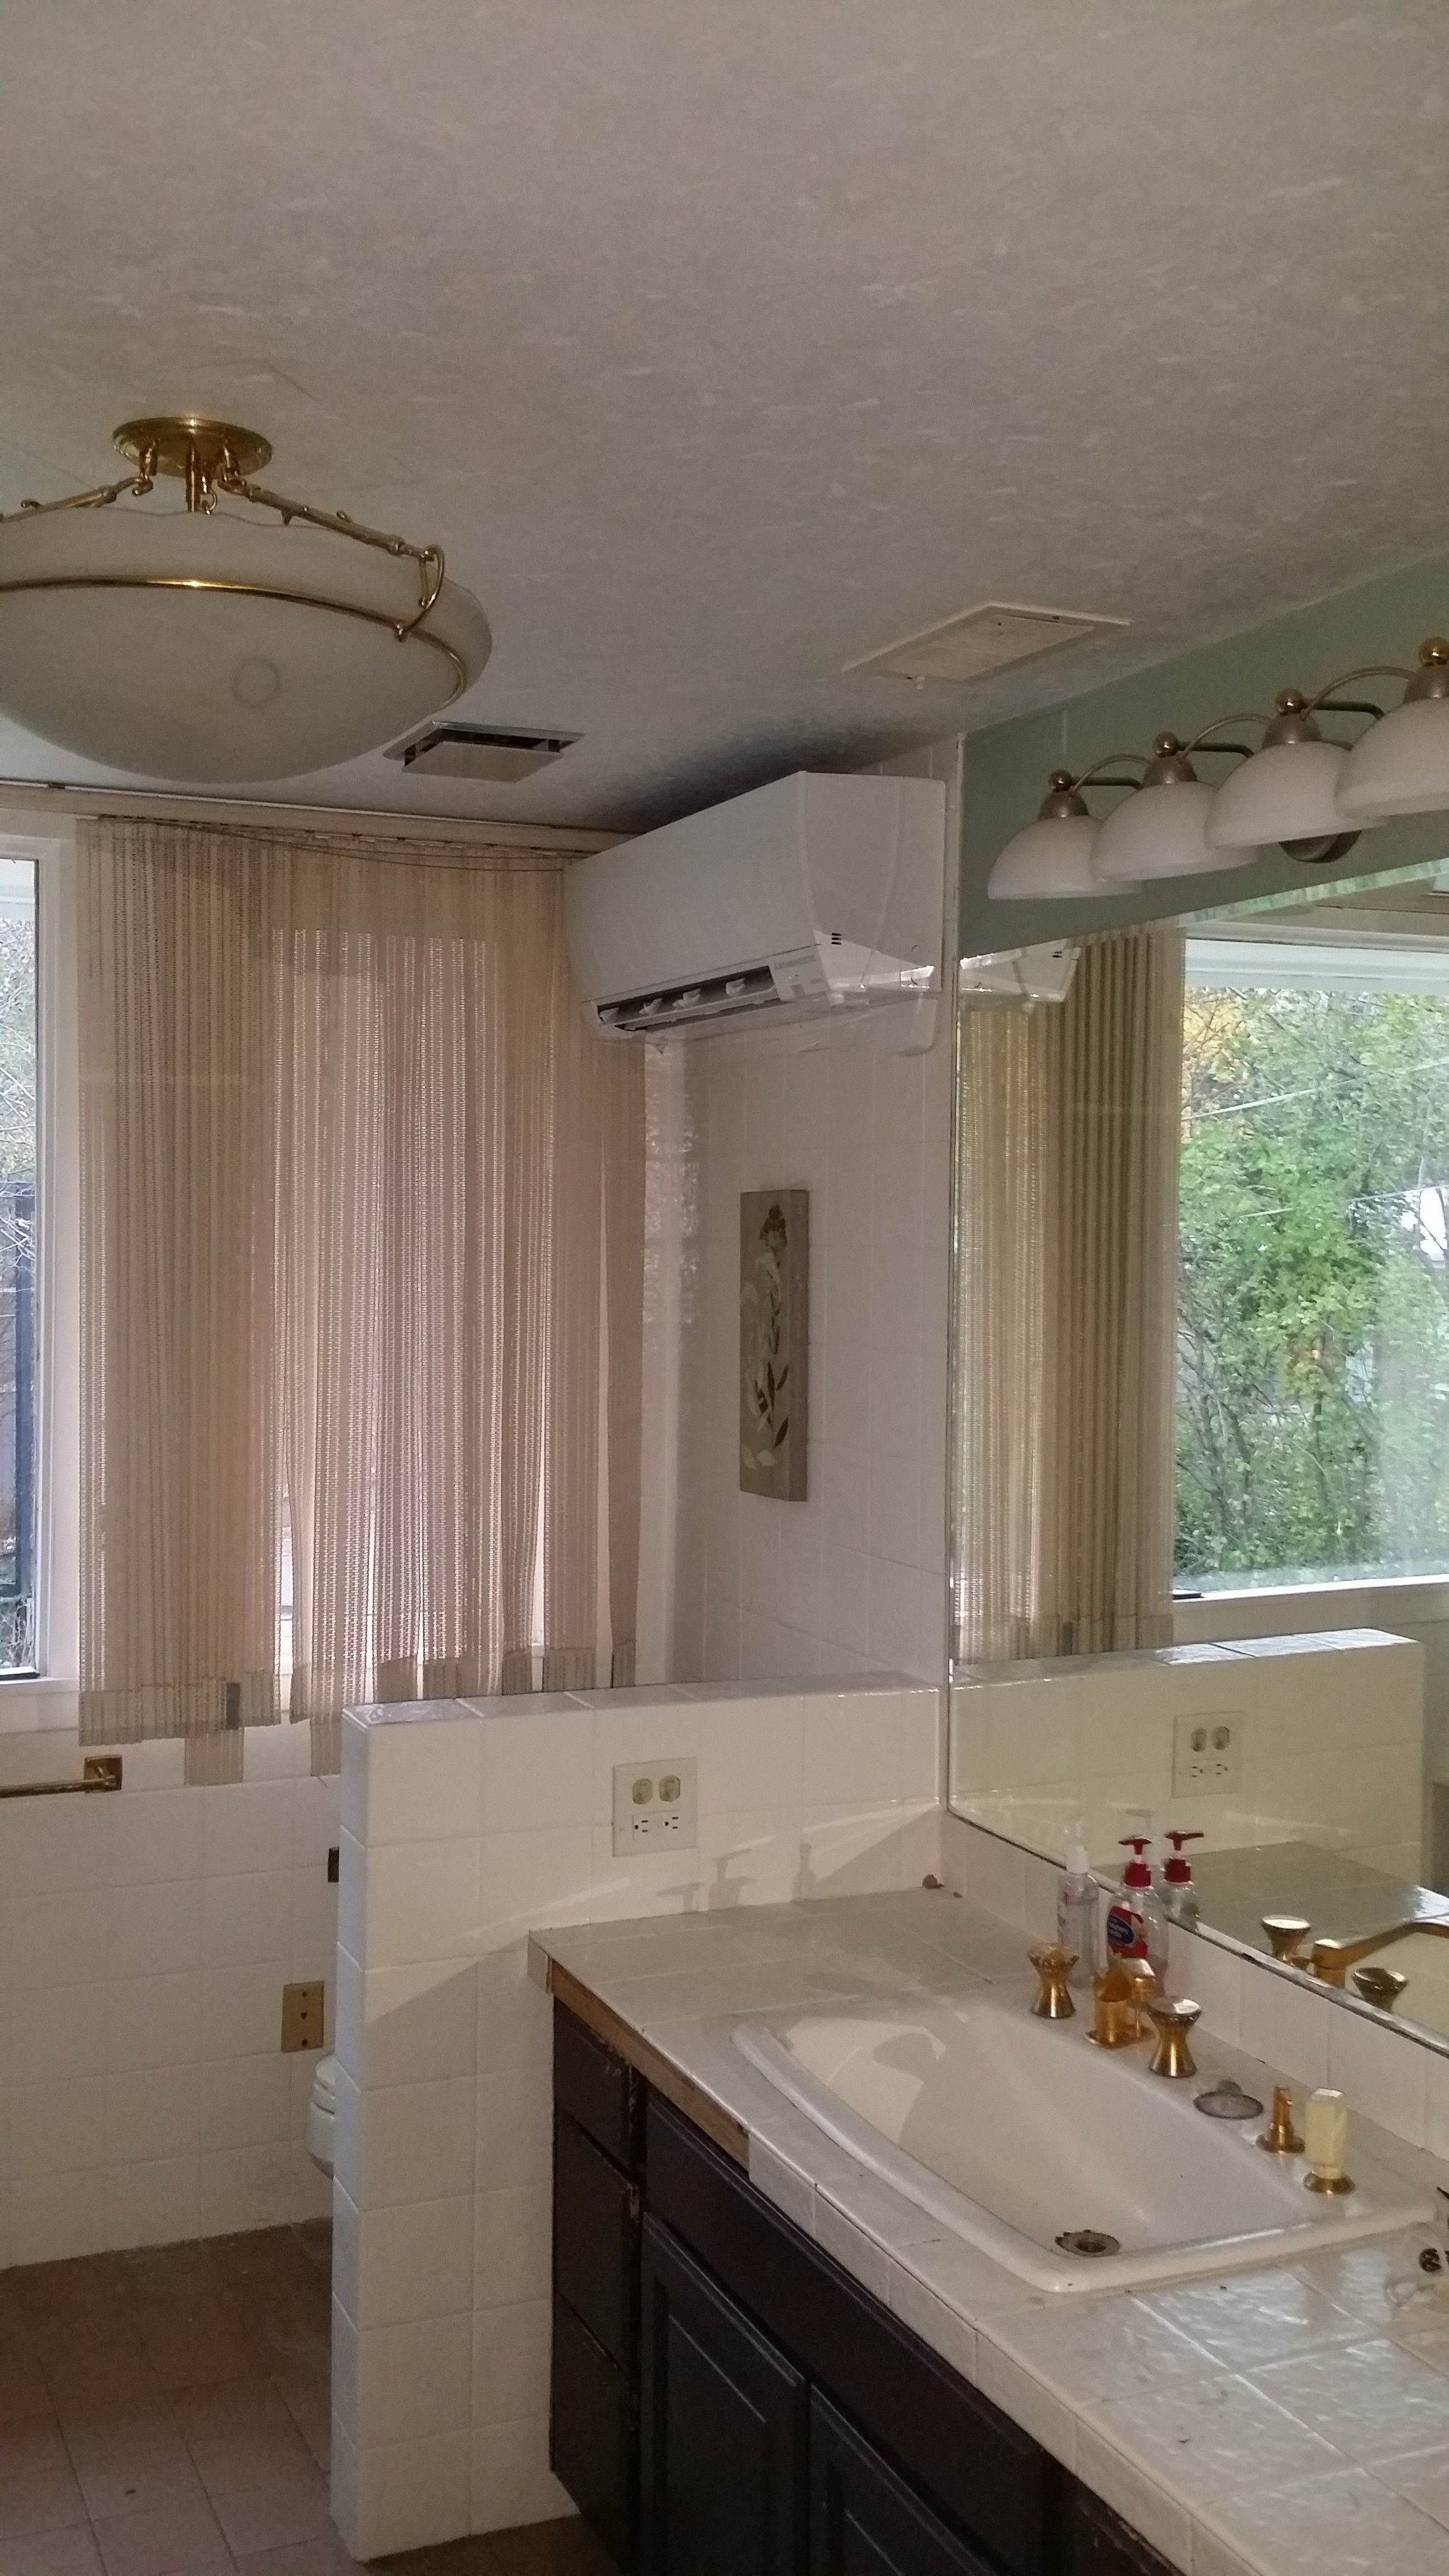 Mitsubishi Wall Mount In Master Bathroom With Images Ductless